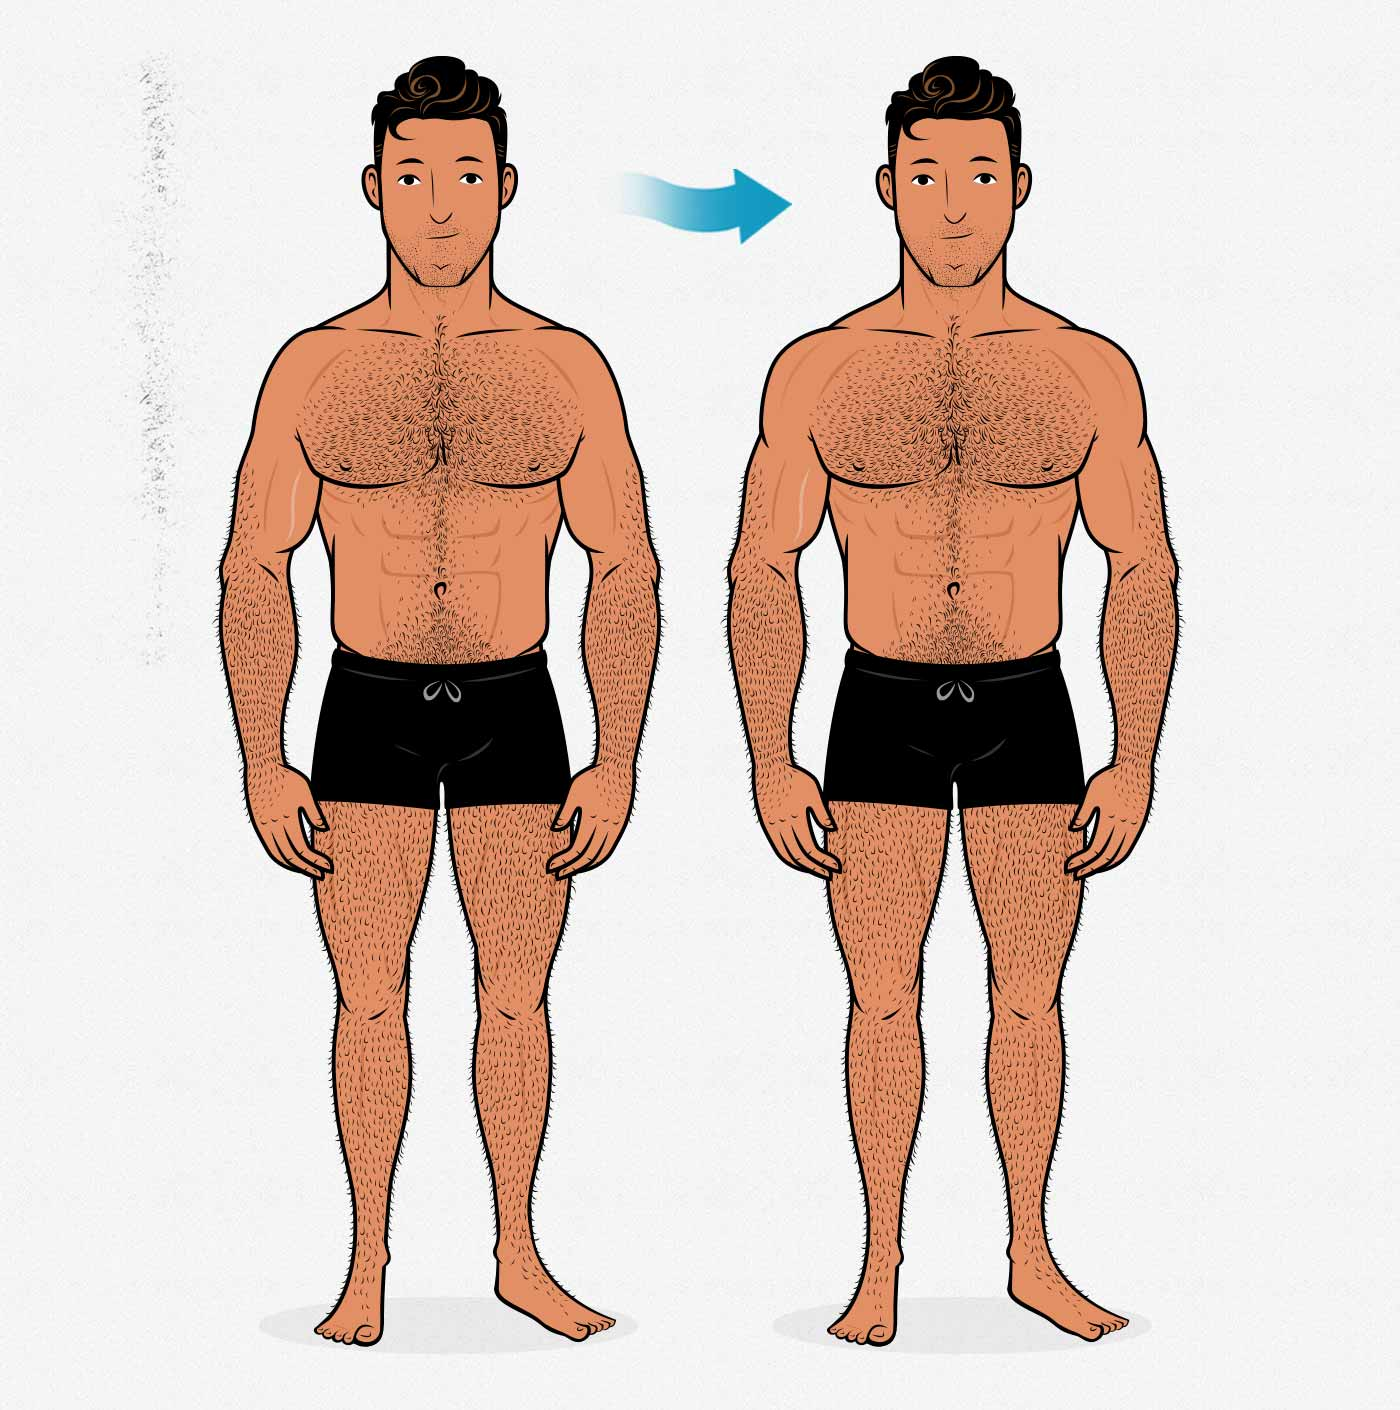 Before and after illustration of a man building broader shoulders.